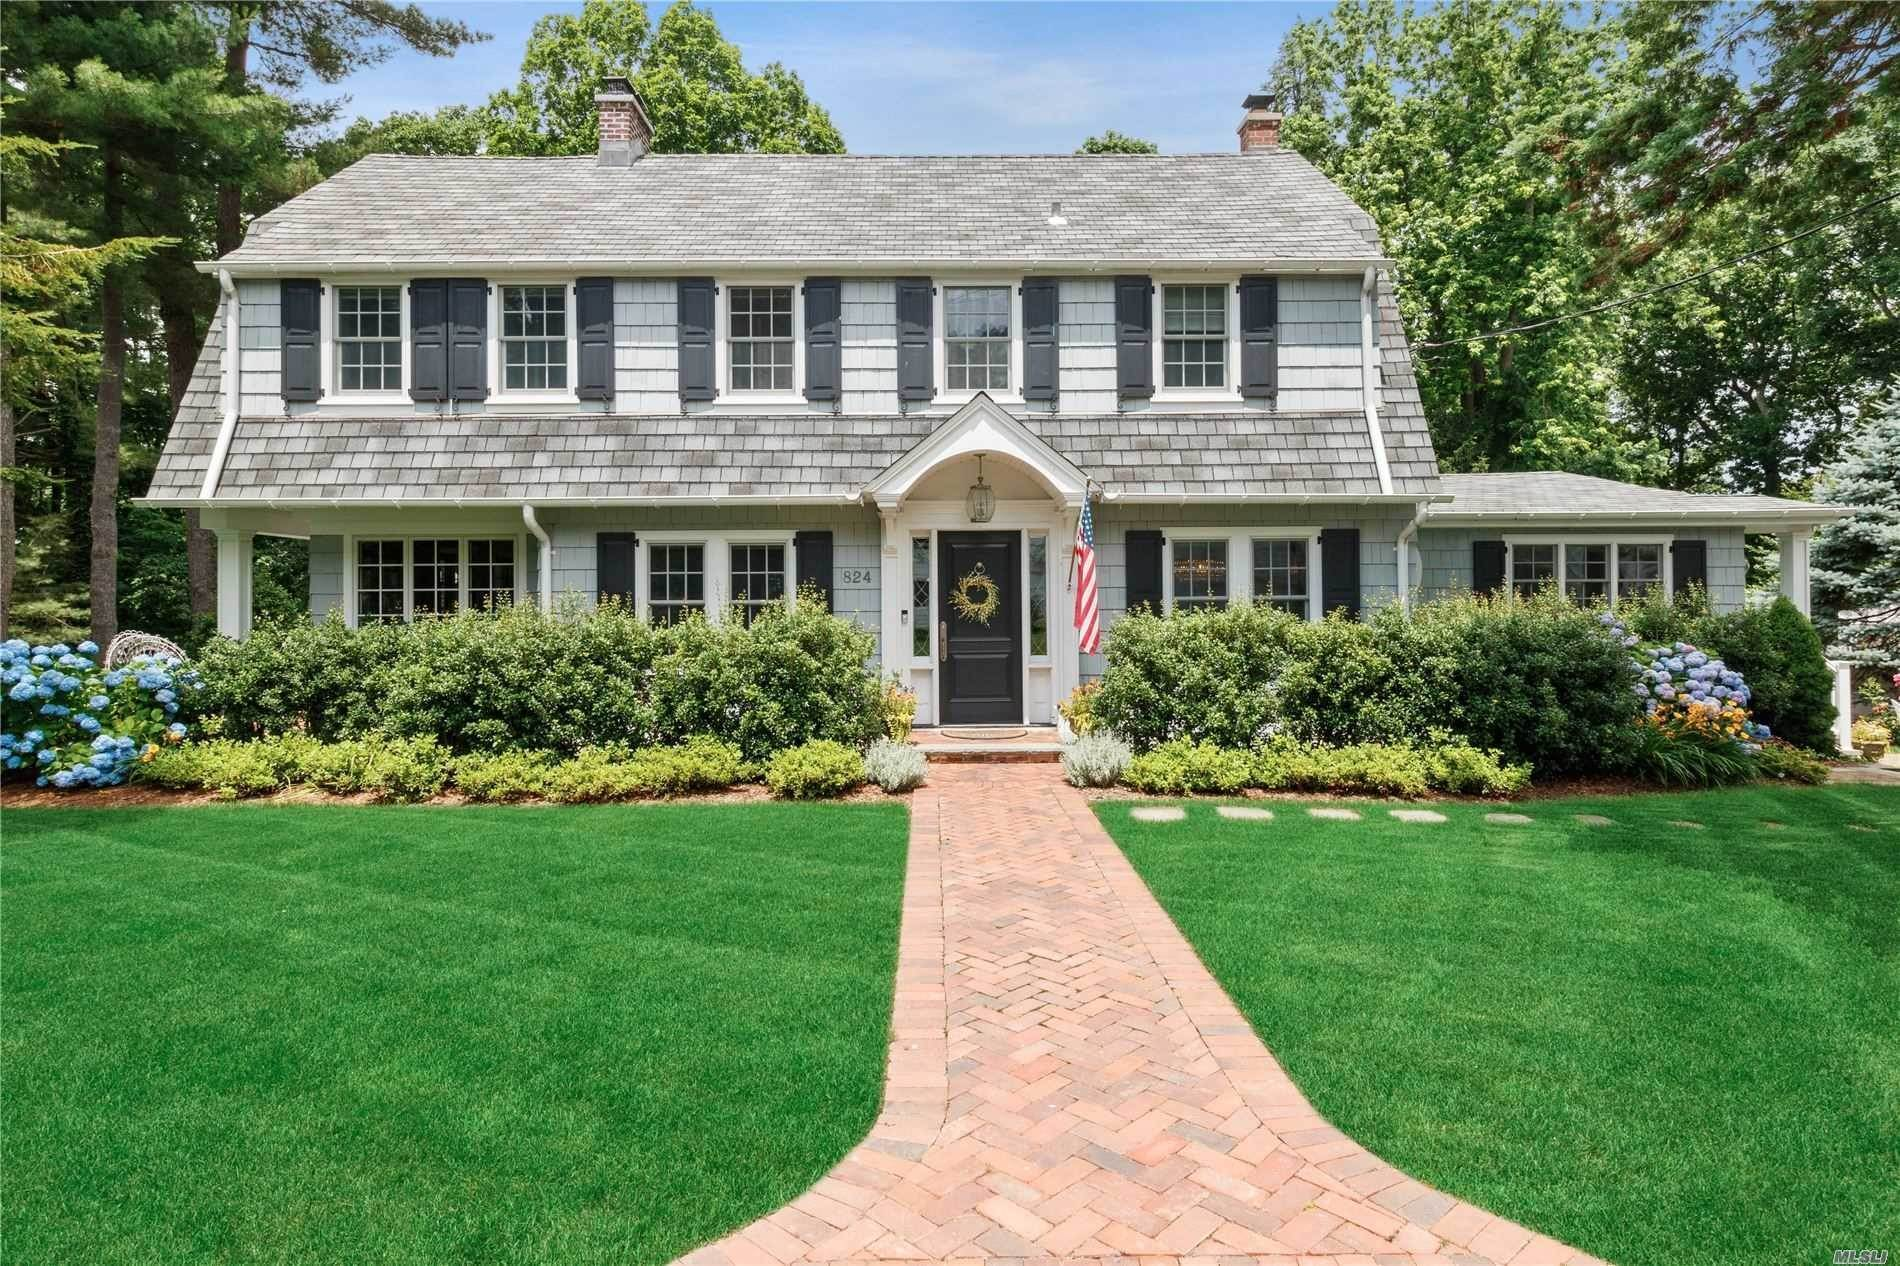 Residential for Sale at 824 Hilltop Road Oyster Bay, New York 11771 United States